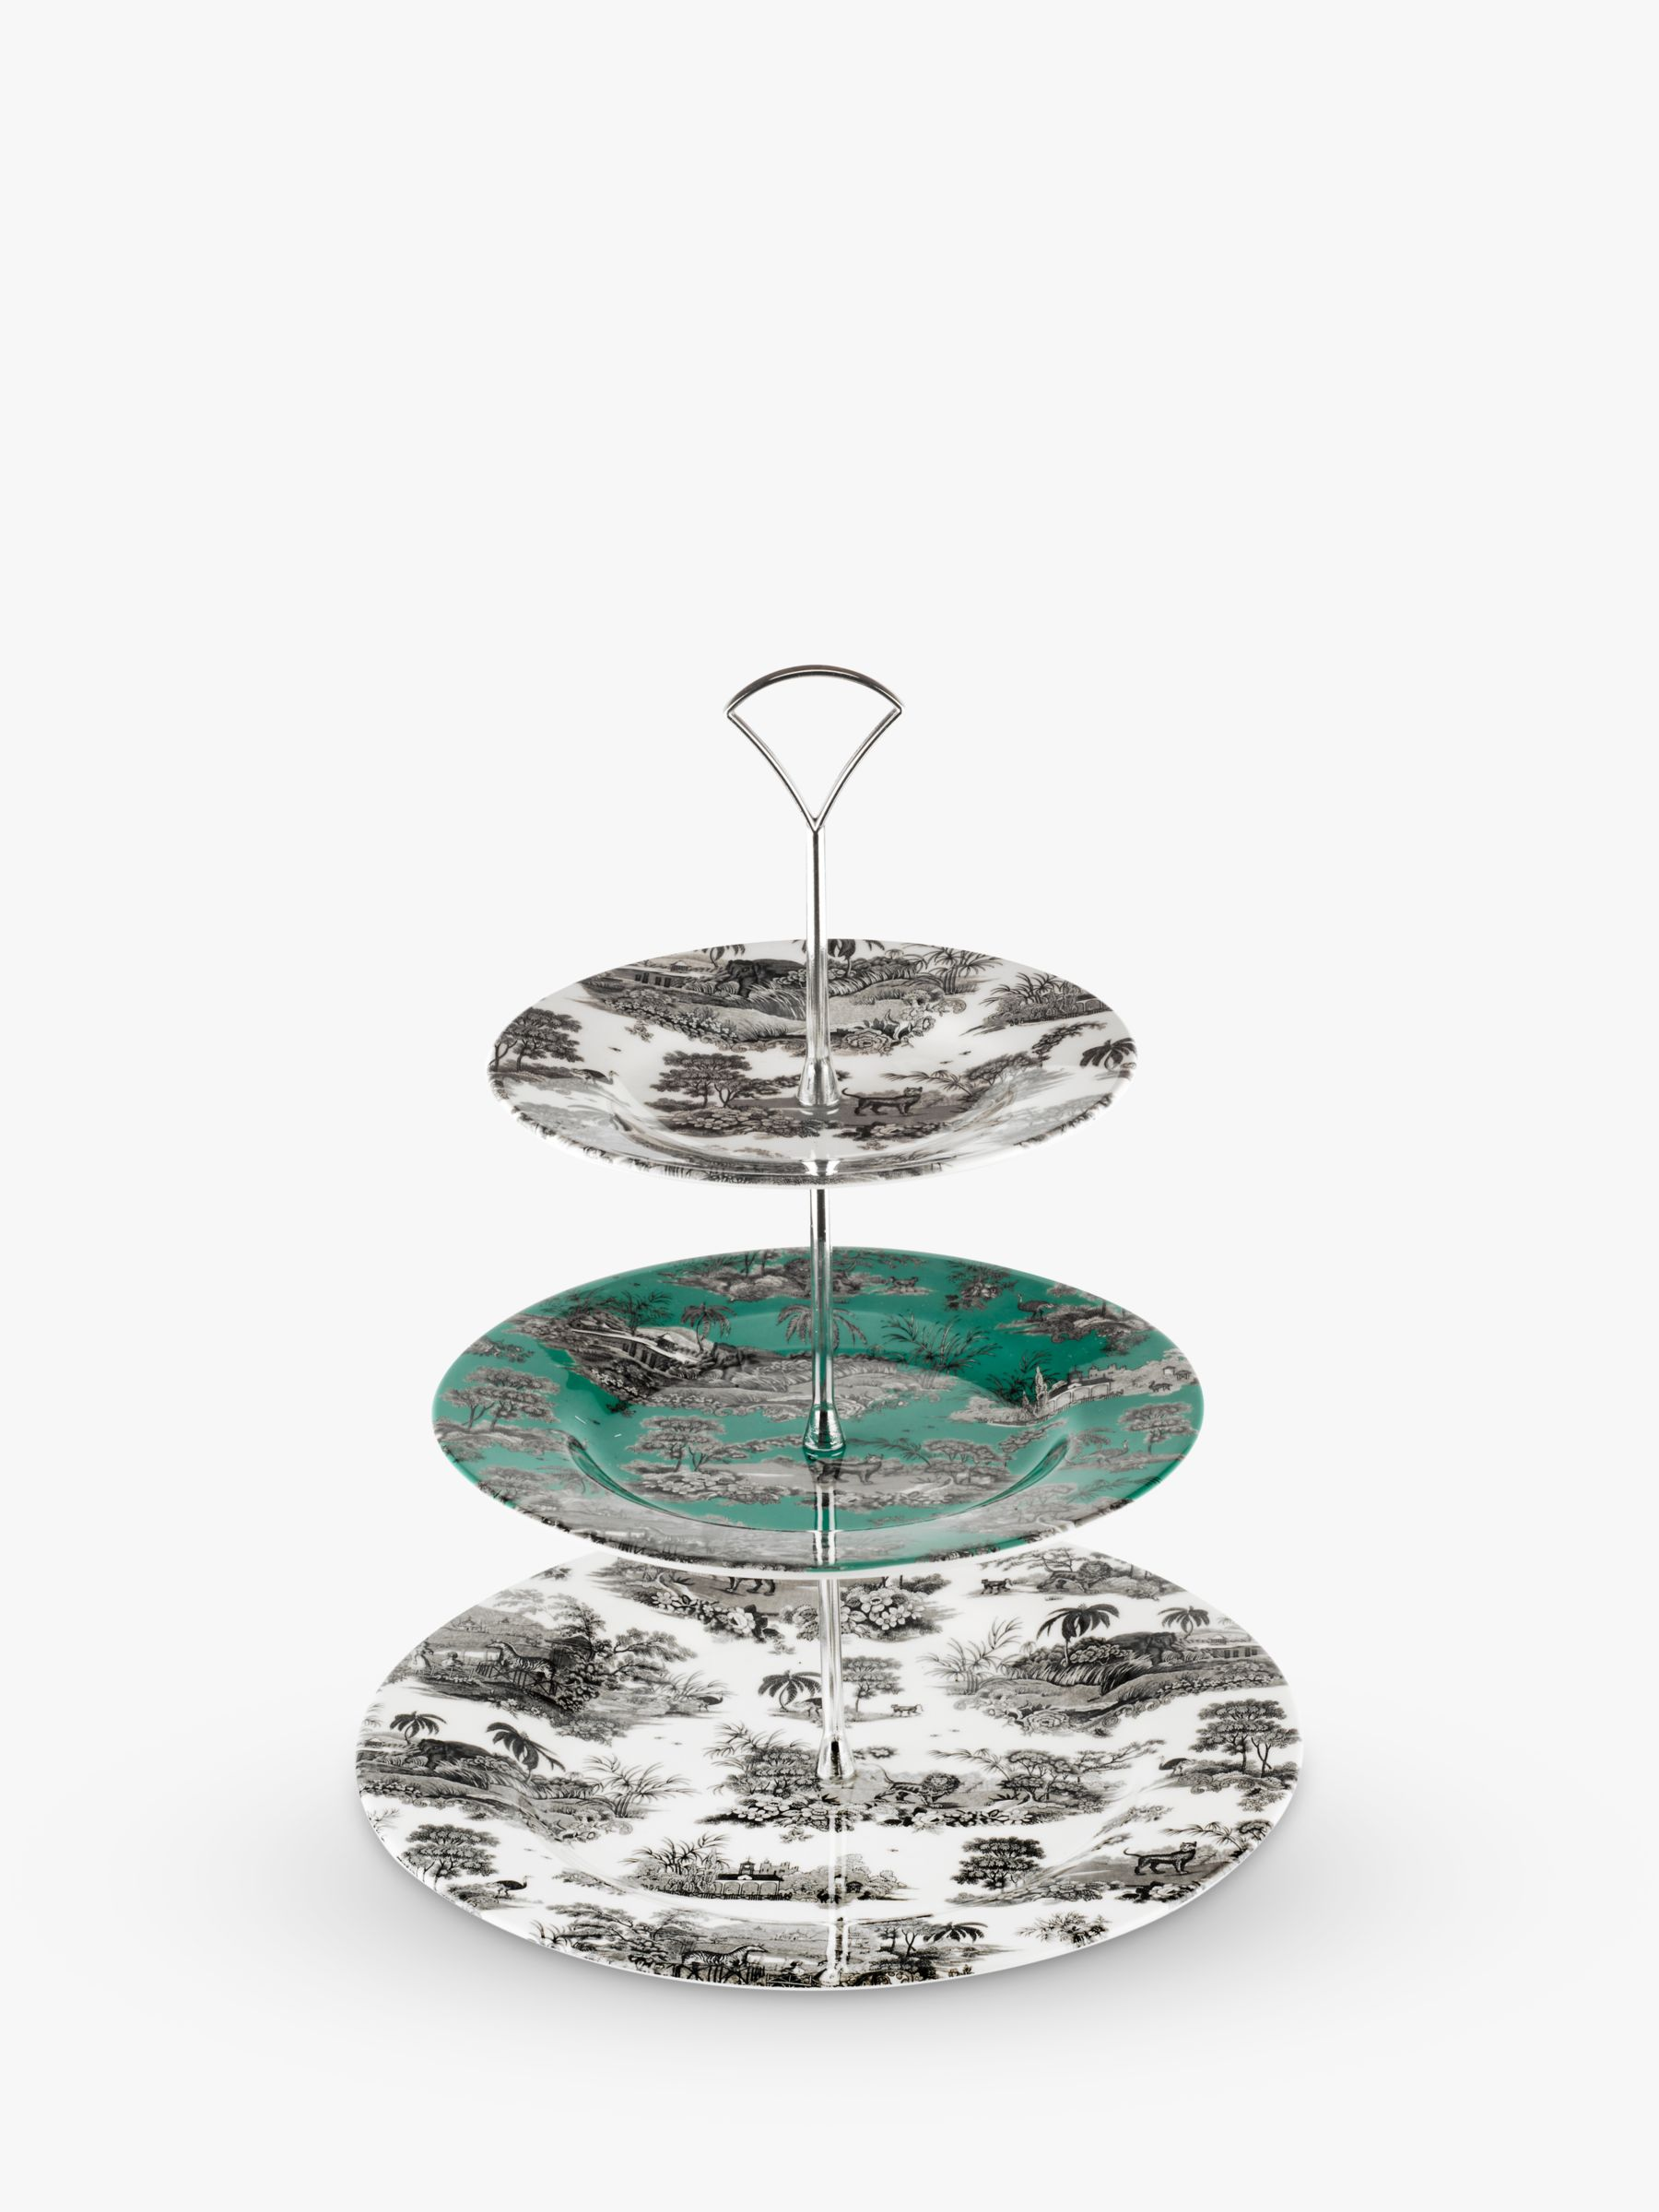 Spode Zoological Gardens 3-Tier Cake Stand, Monochrome/Turquoise